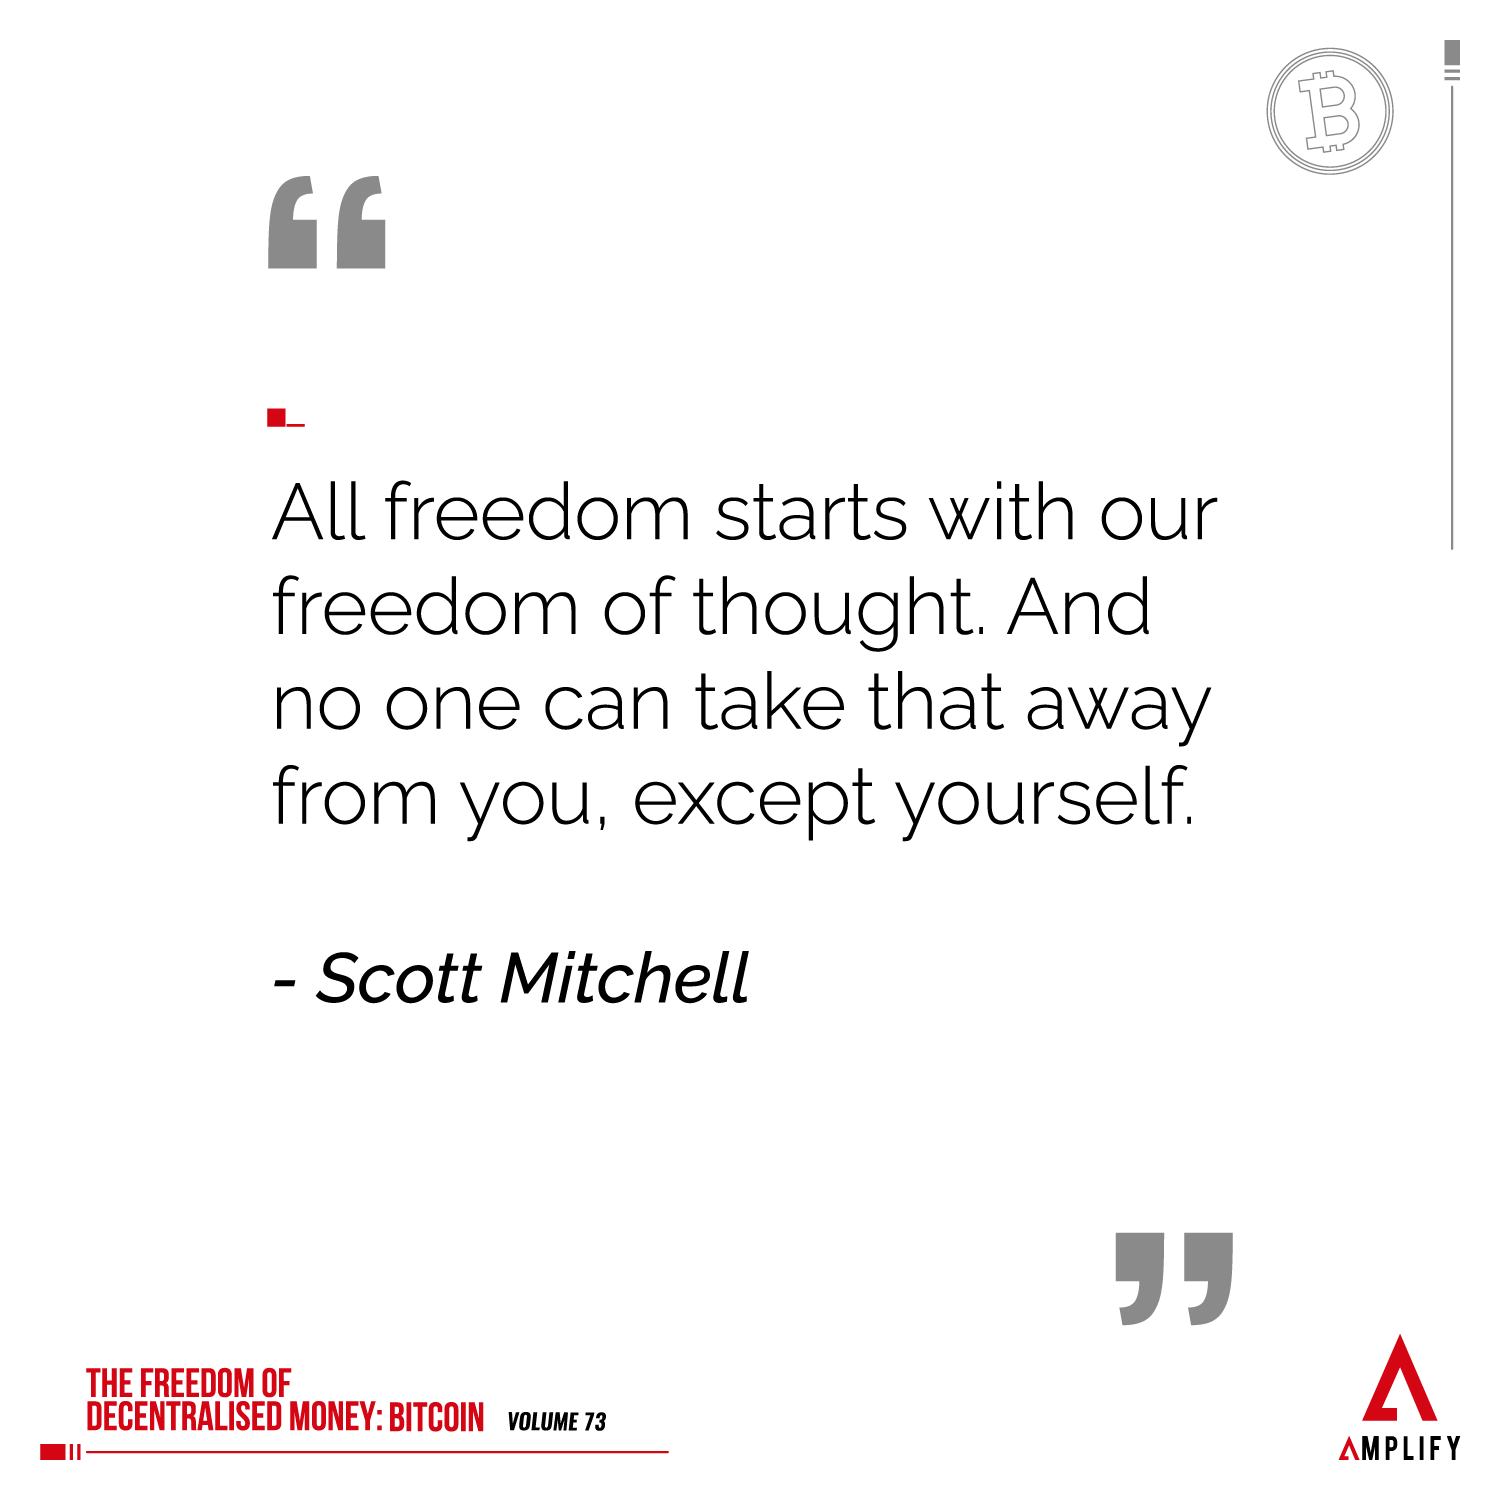 """decorative image with the quote """"All freedom starts with our freedom of thought. And no one can take that away from you, except yourself."""" by Scott Mitchell"""